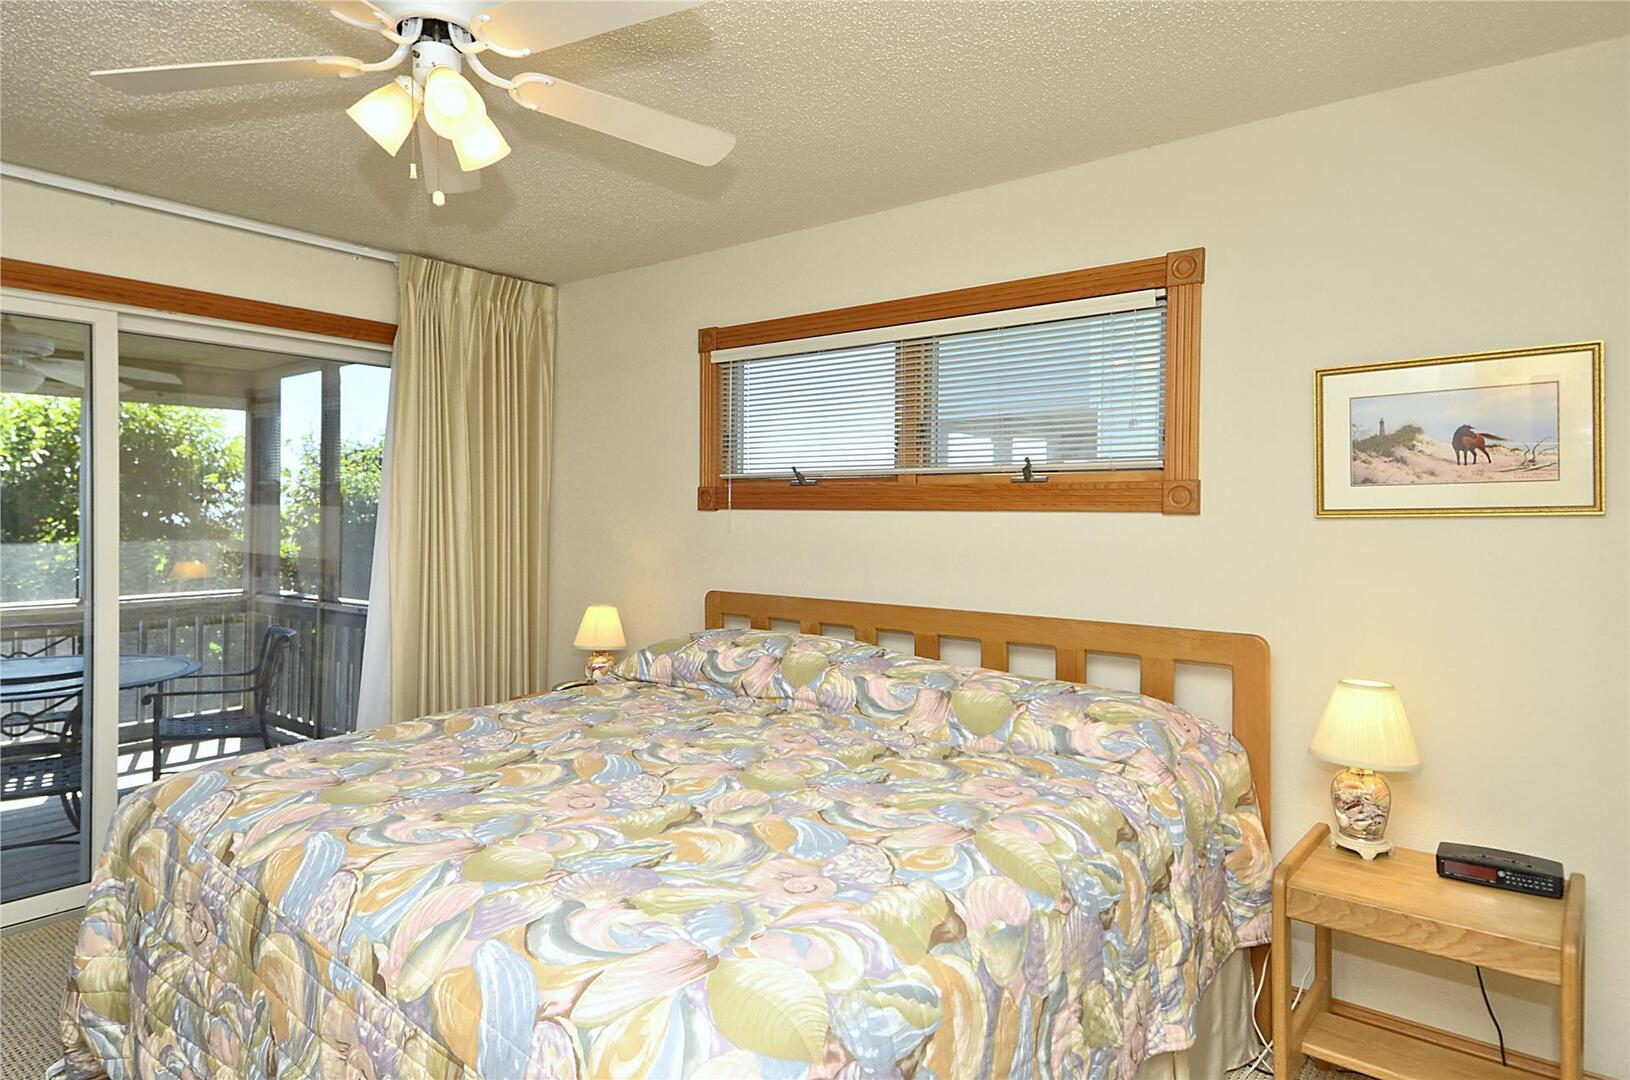 Entry Level,Bedroom,